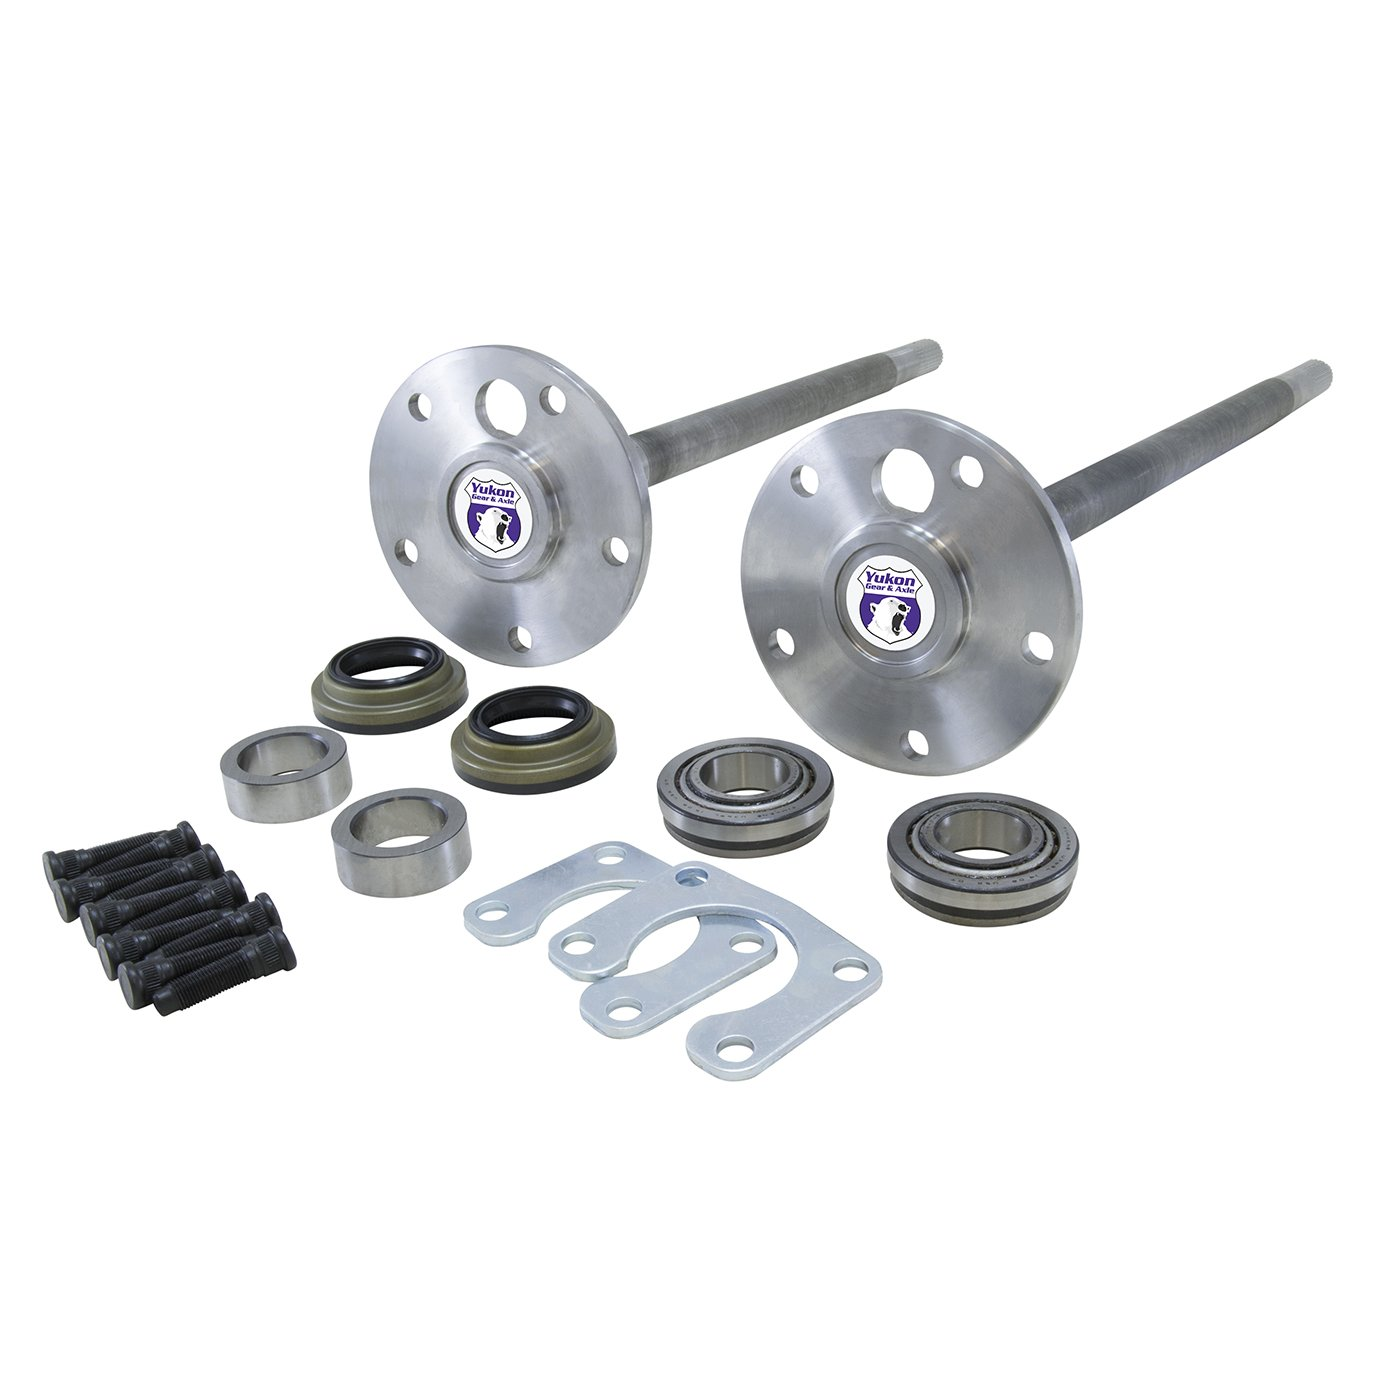 Yukon (YA FBRONCO-1-28) 1541H Alloy Rear Axle Kit for Ford Bronco 9'' Differential with 28 Spline